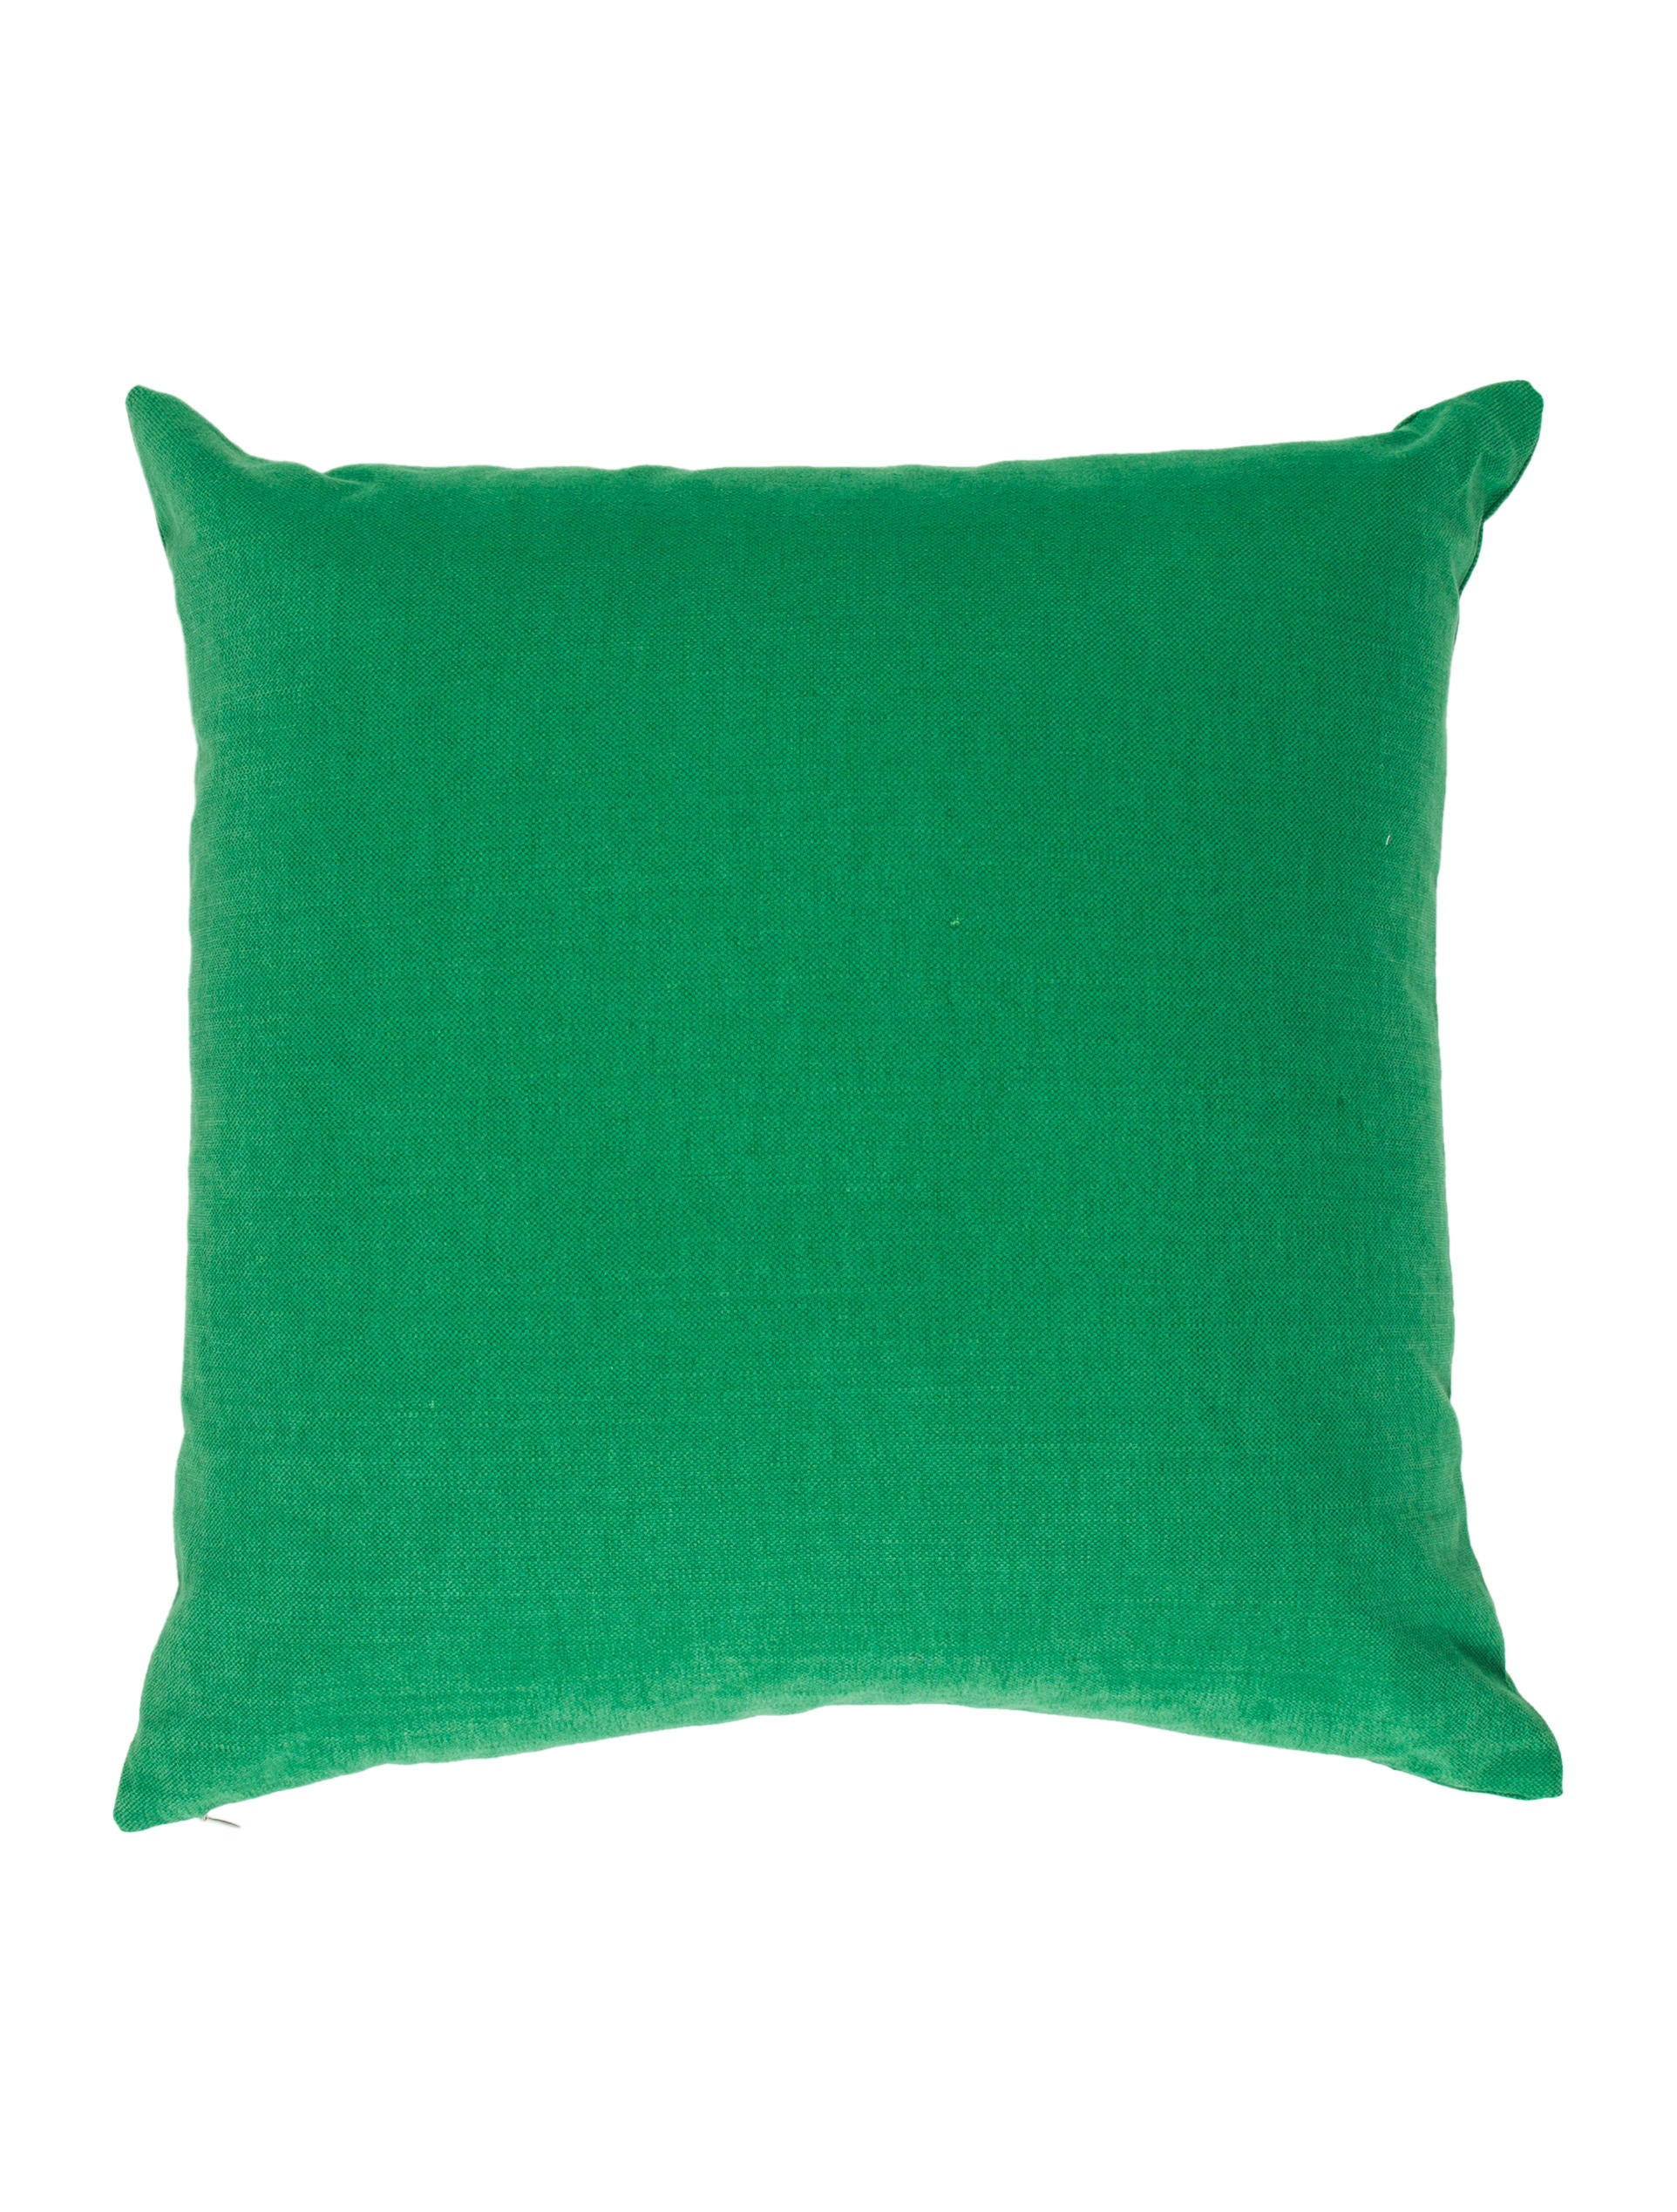 Canvas Throw Pillows Bedding And Bath Pillo20274 The